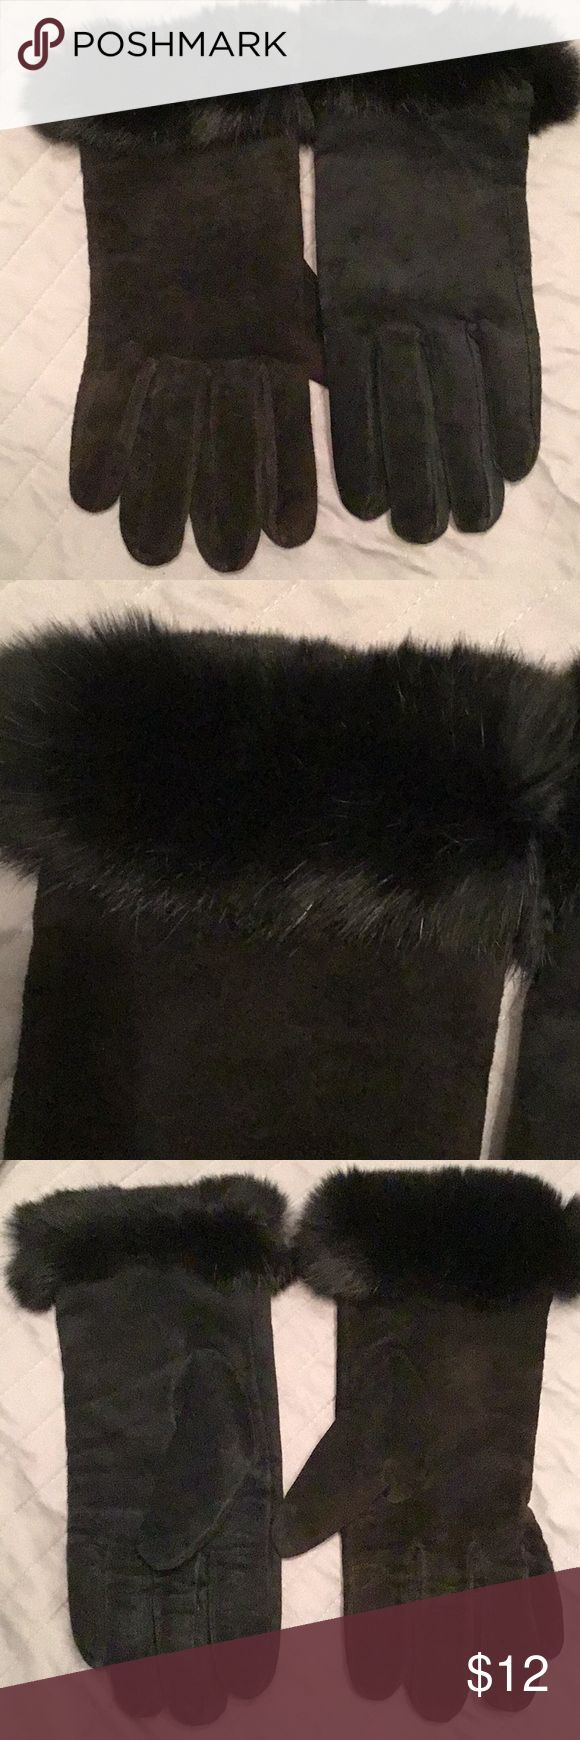 Beautiful Black Suede Gloves w/ Rabbit Fur Gorgeous black suede gloves with rabbit fur, very gently worn and in very good condition, ladies size large, price firm. Thinsulate Accessories Gloves & Mittens